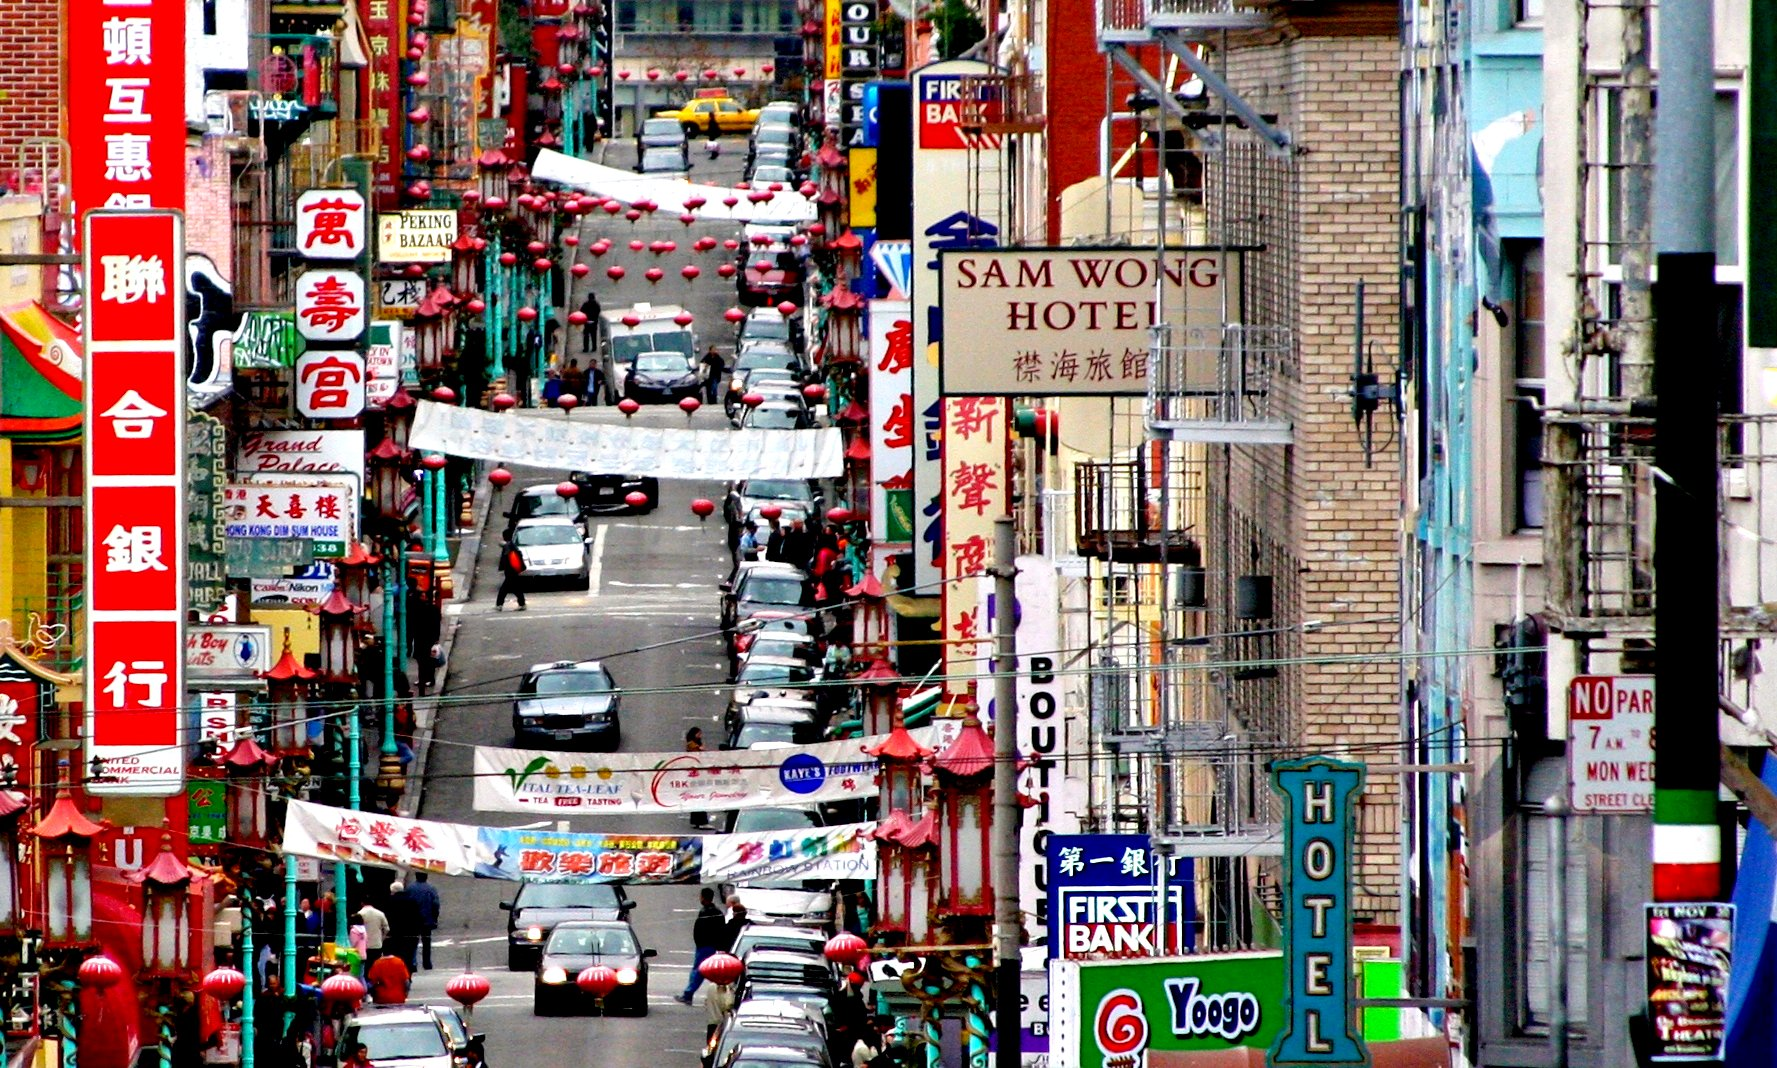 View of San Francisco Chinatown